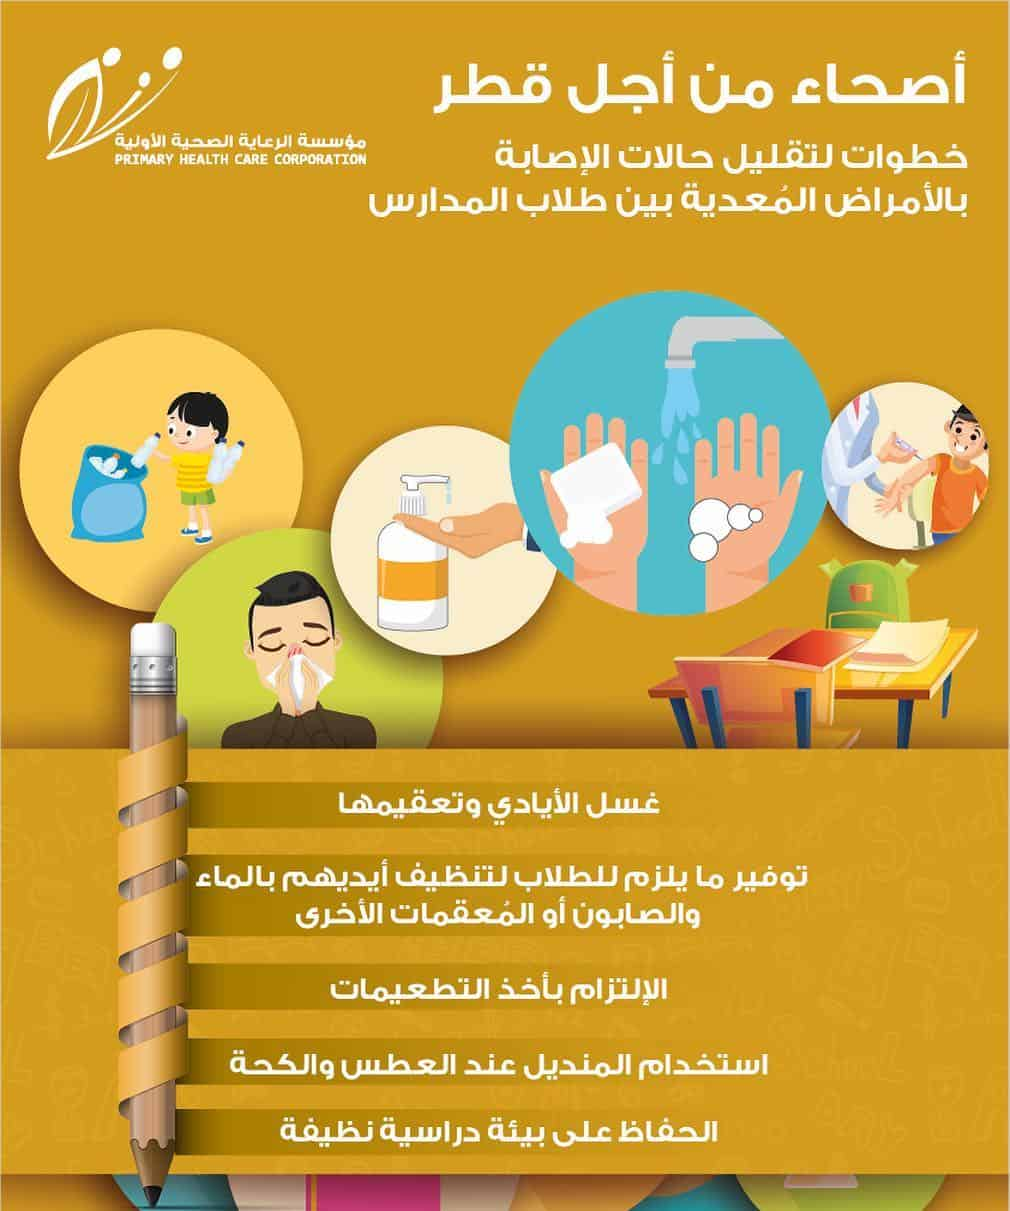 PHCC launches awareness campaign for school students